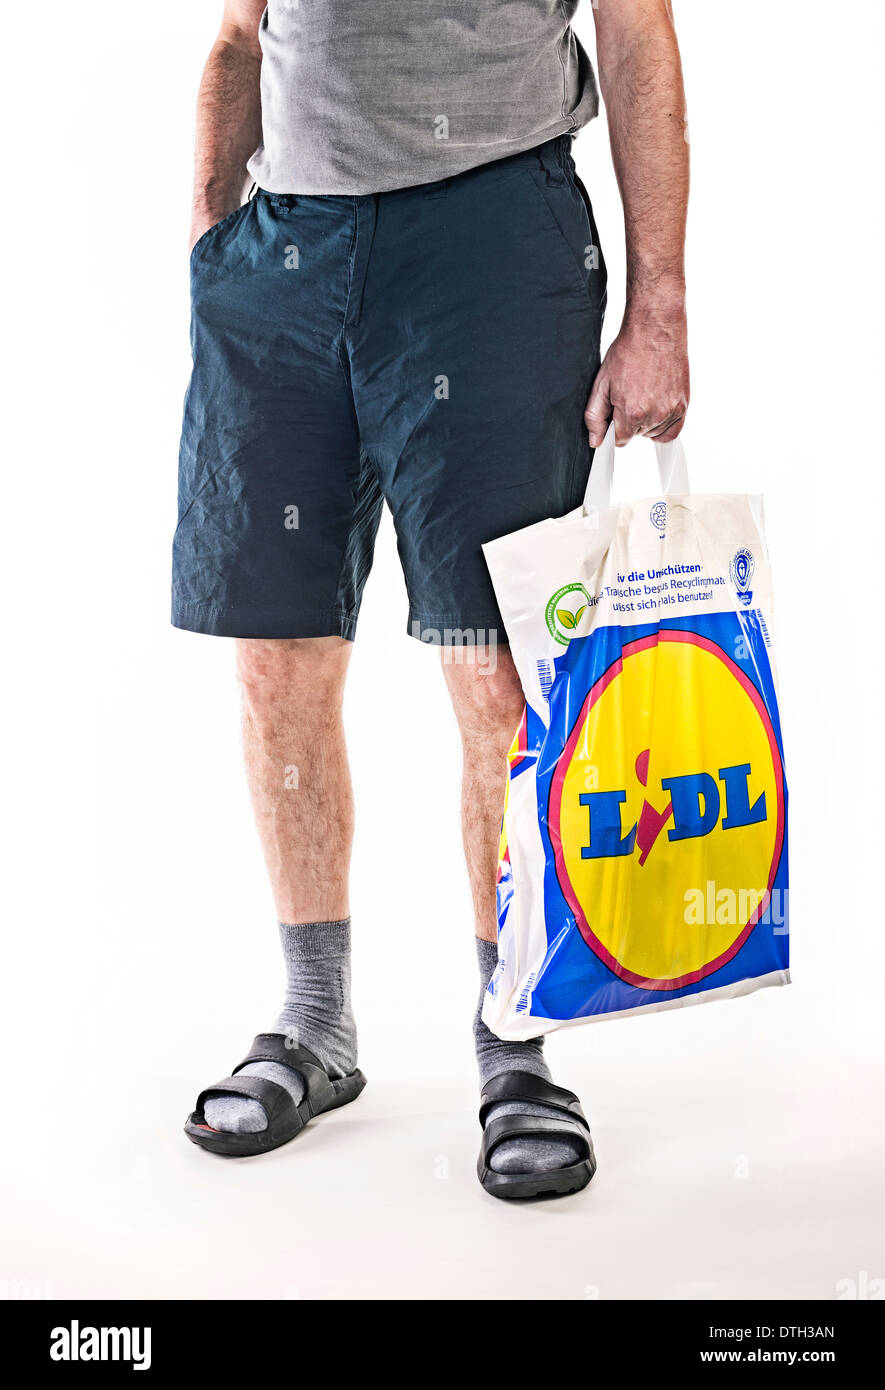 Lower body of a man with short pants, carrying a plastic bag of food discounter Lidl. Stock Photo